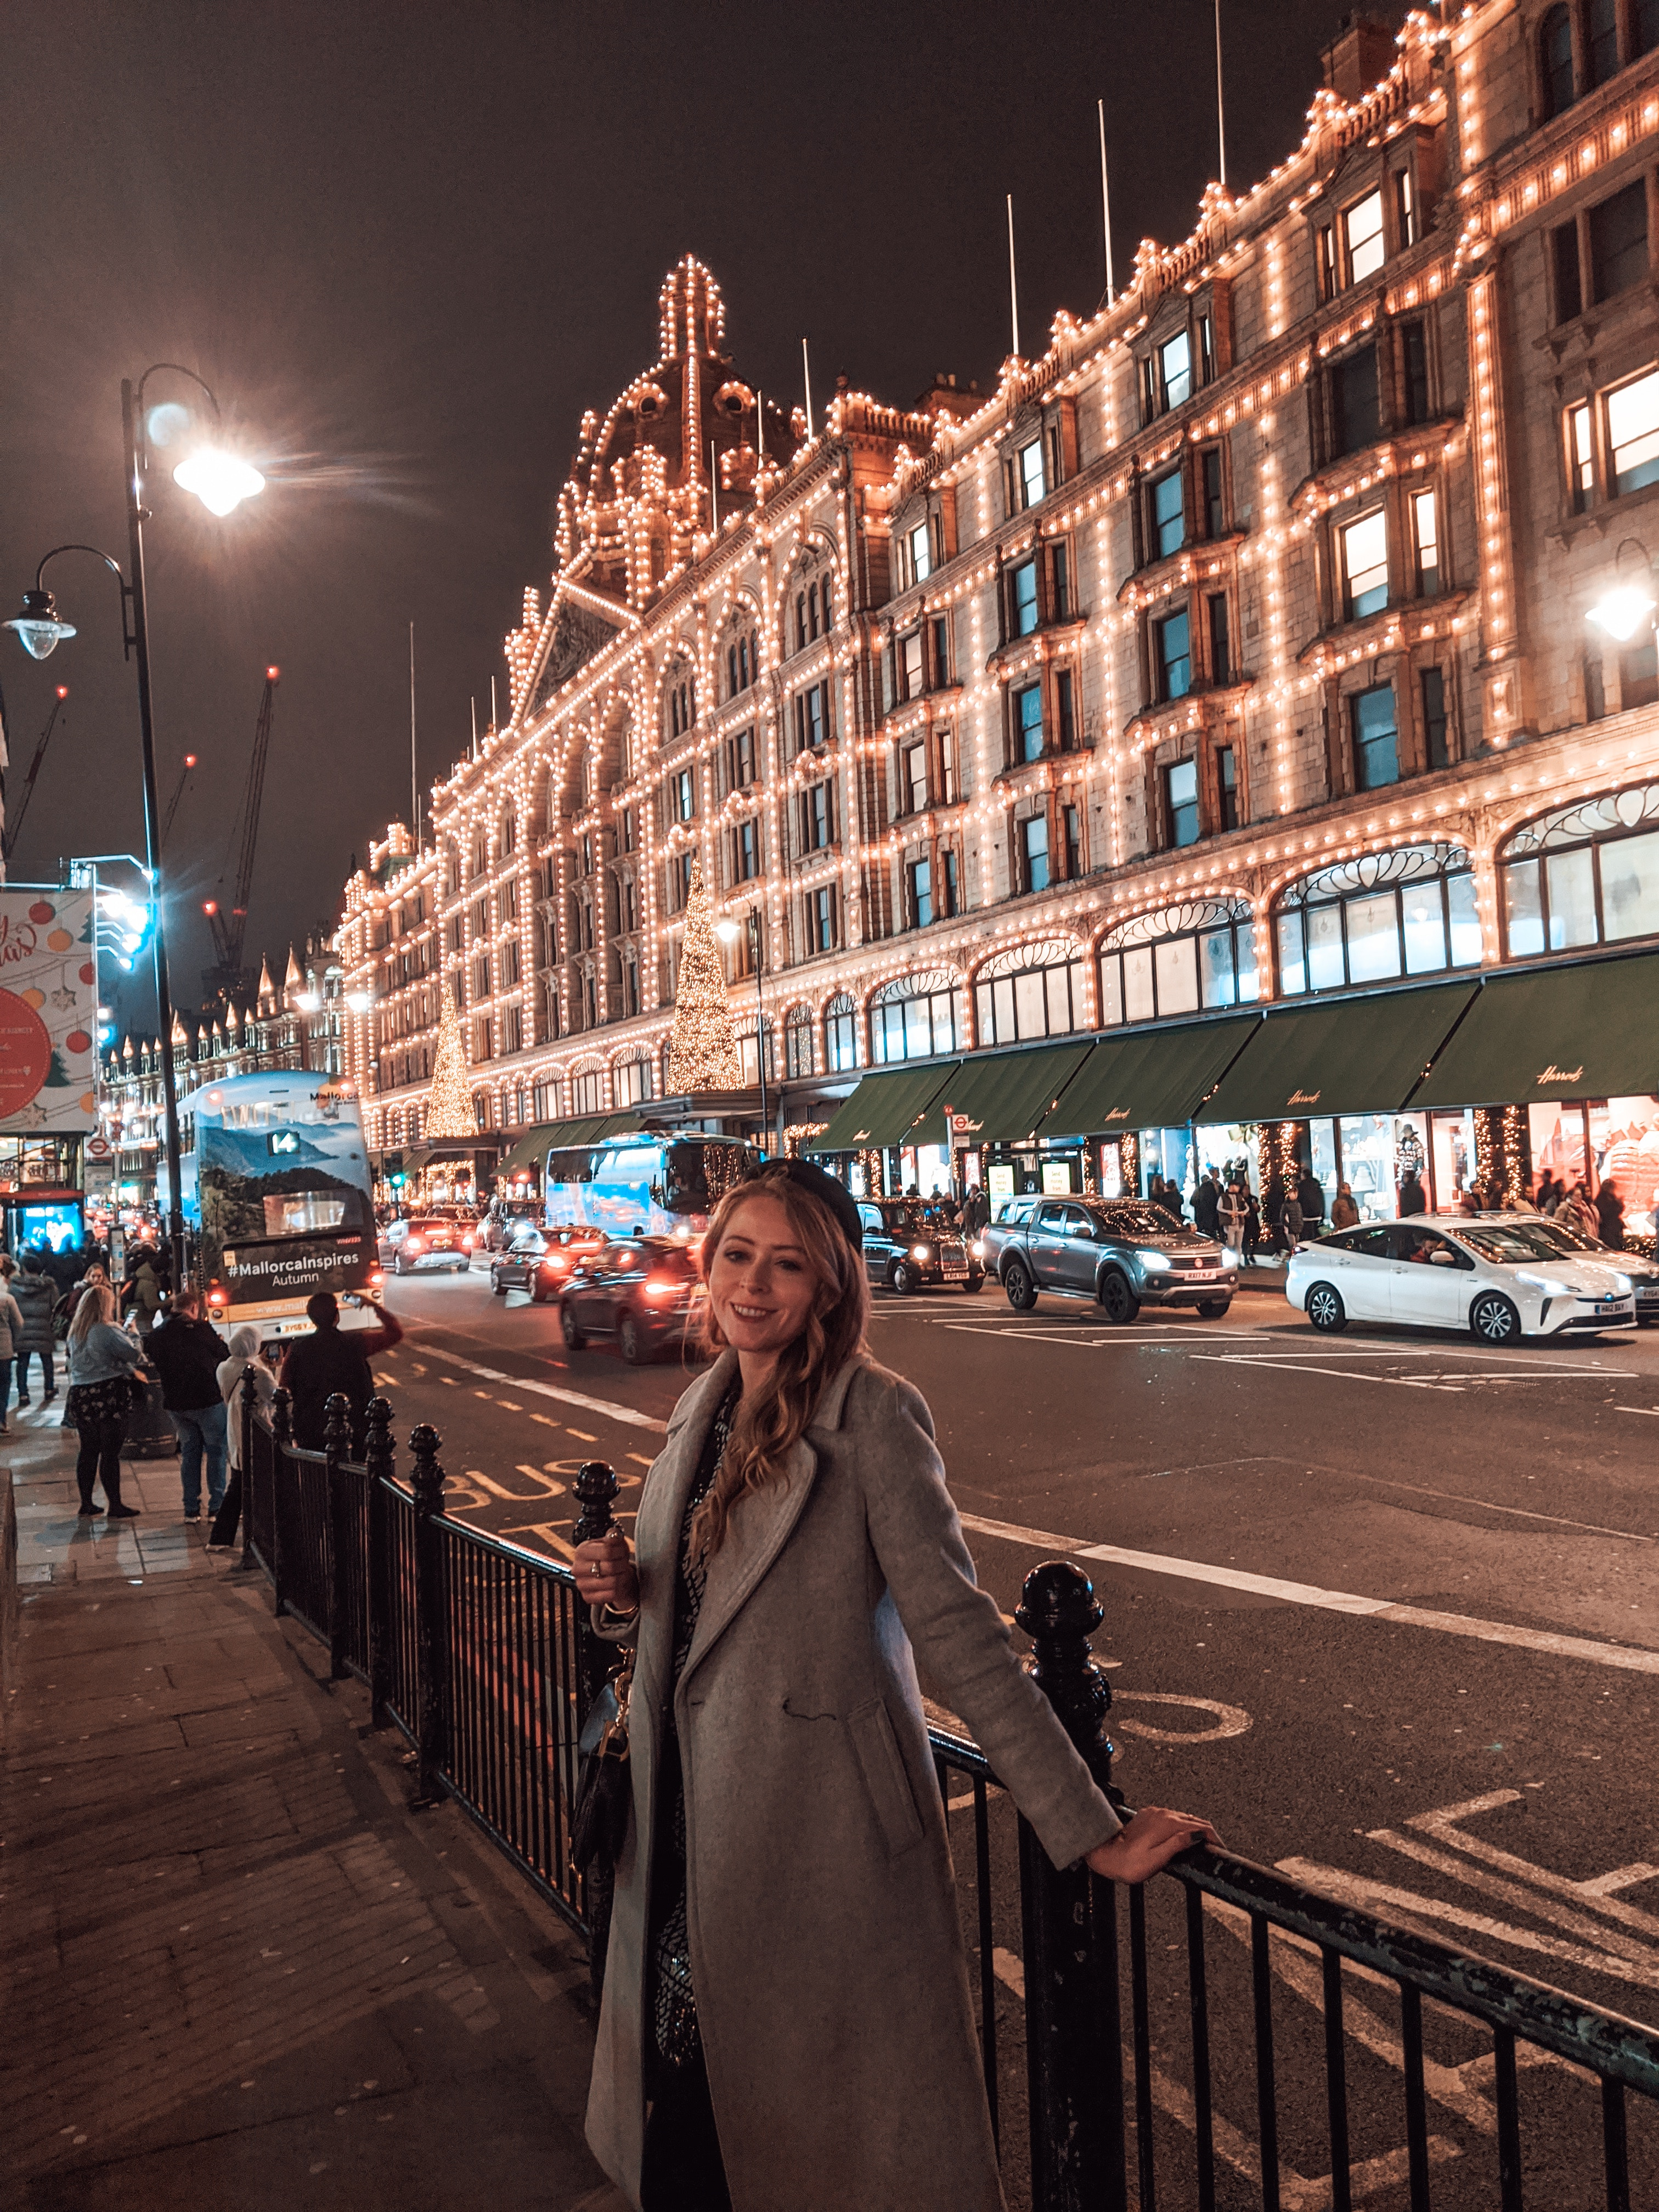 Harrods at Christmas time - all the lights make the famous department store so special.